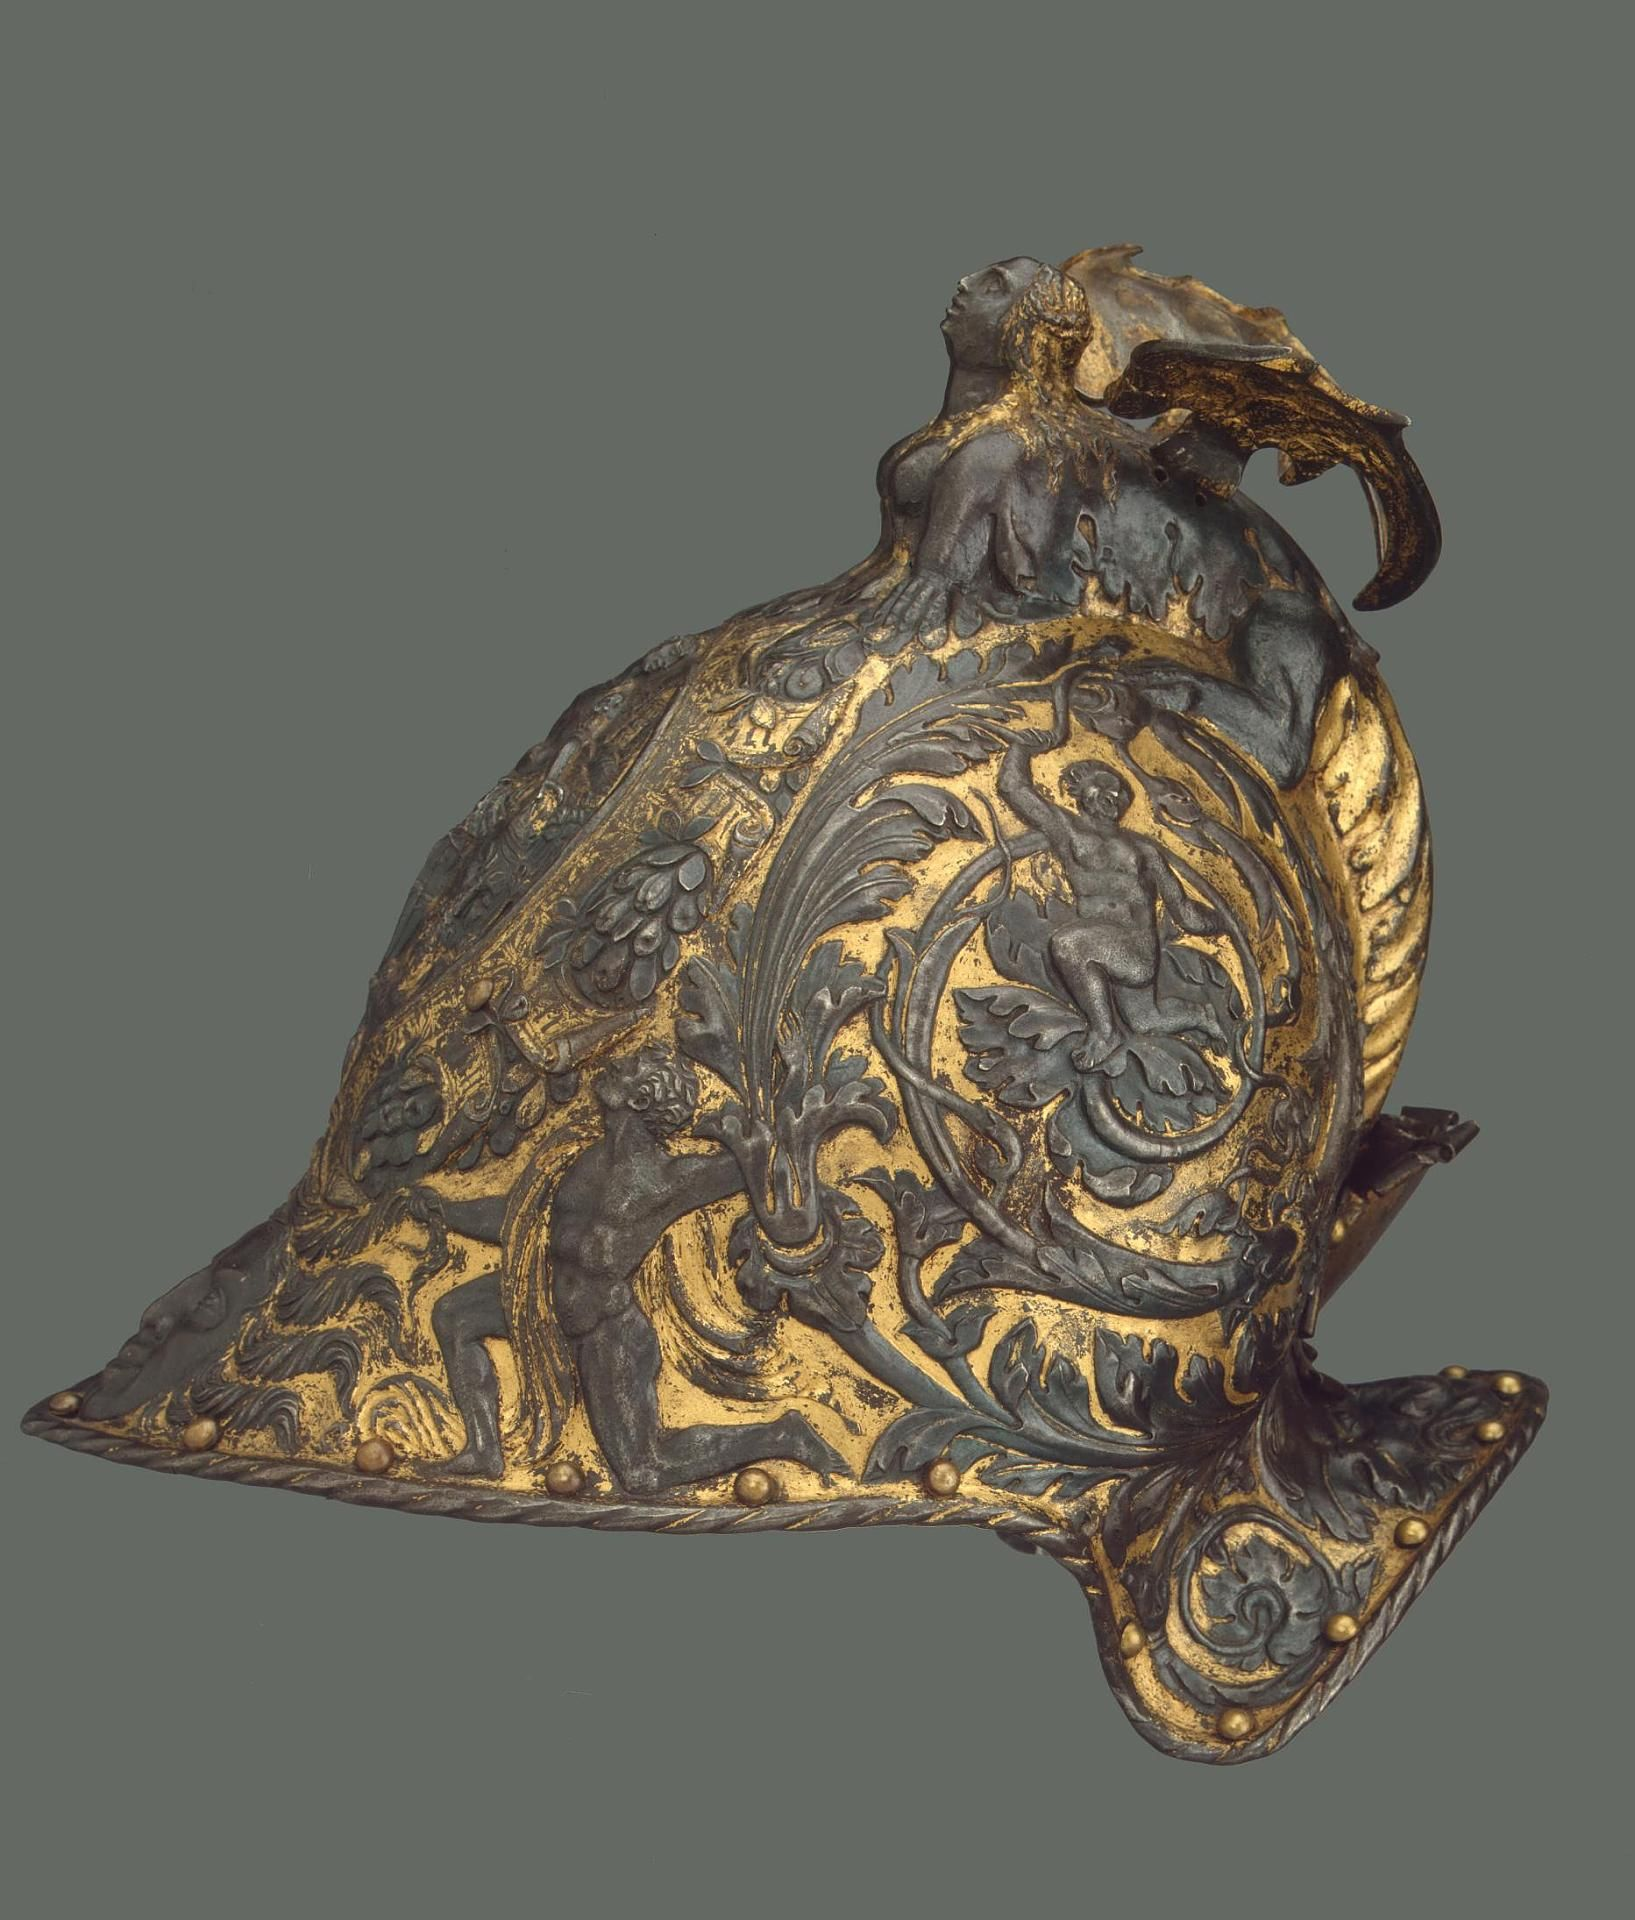 Burgonet Helmet Author: Country: Italy Collection: Arms